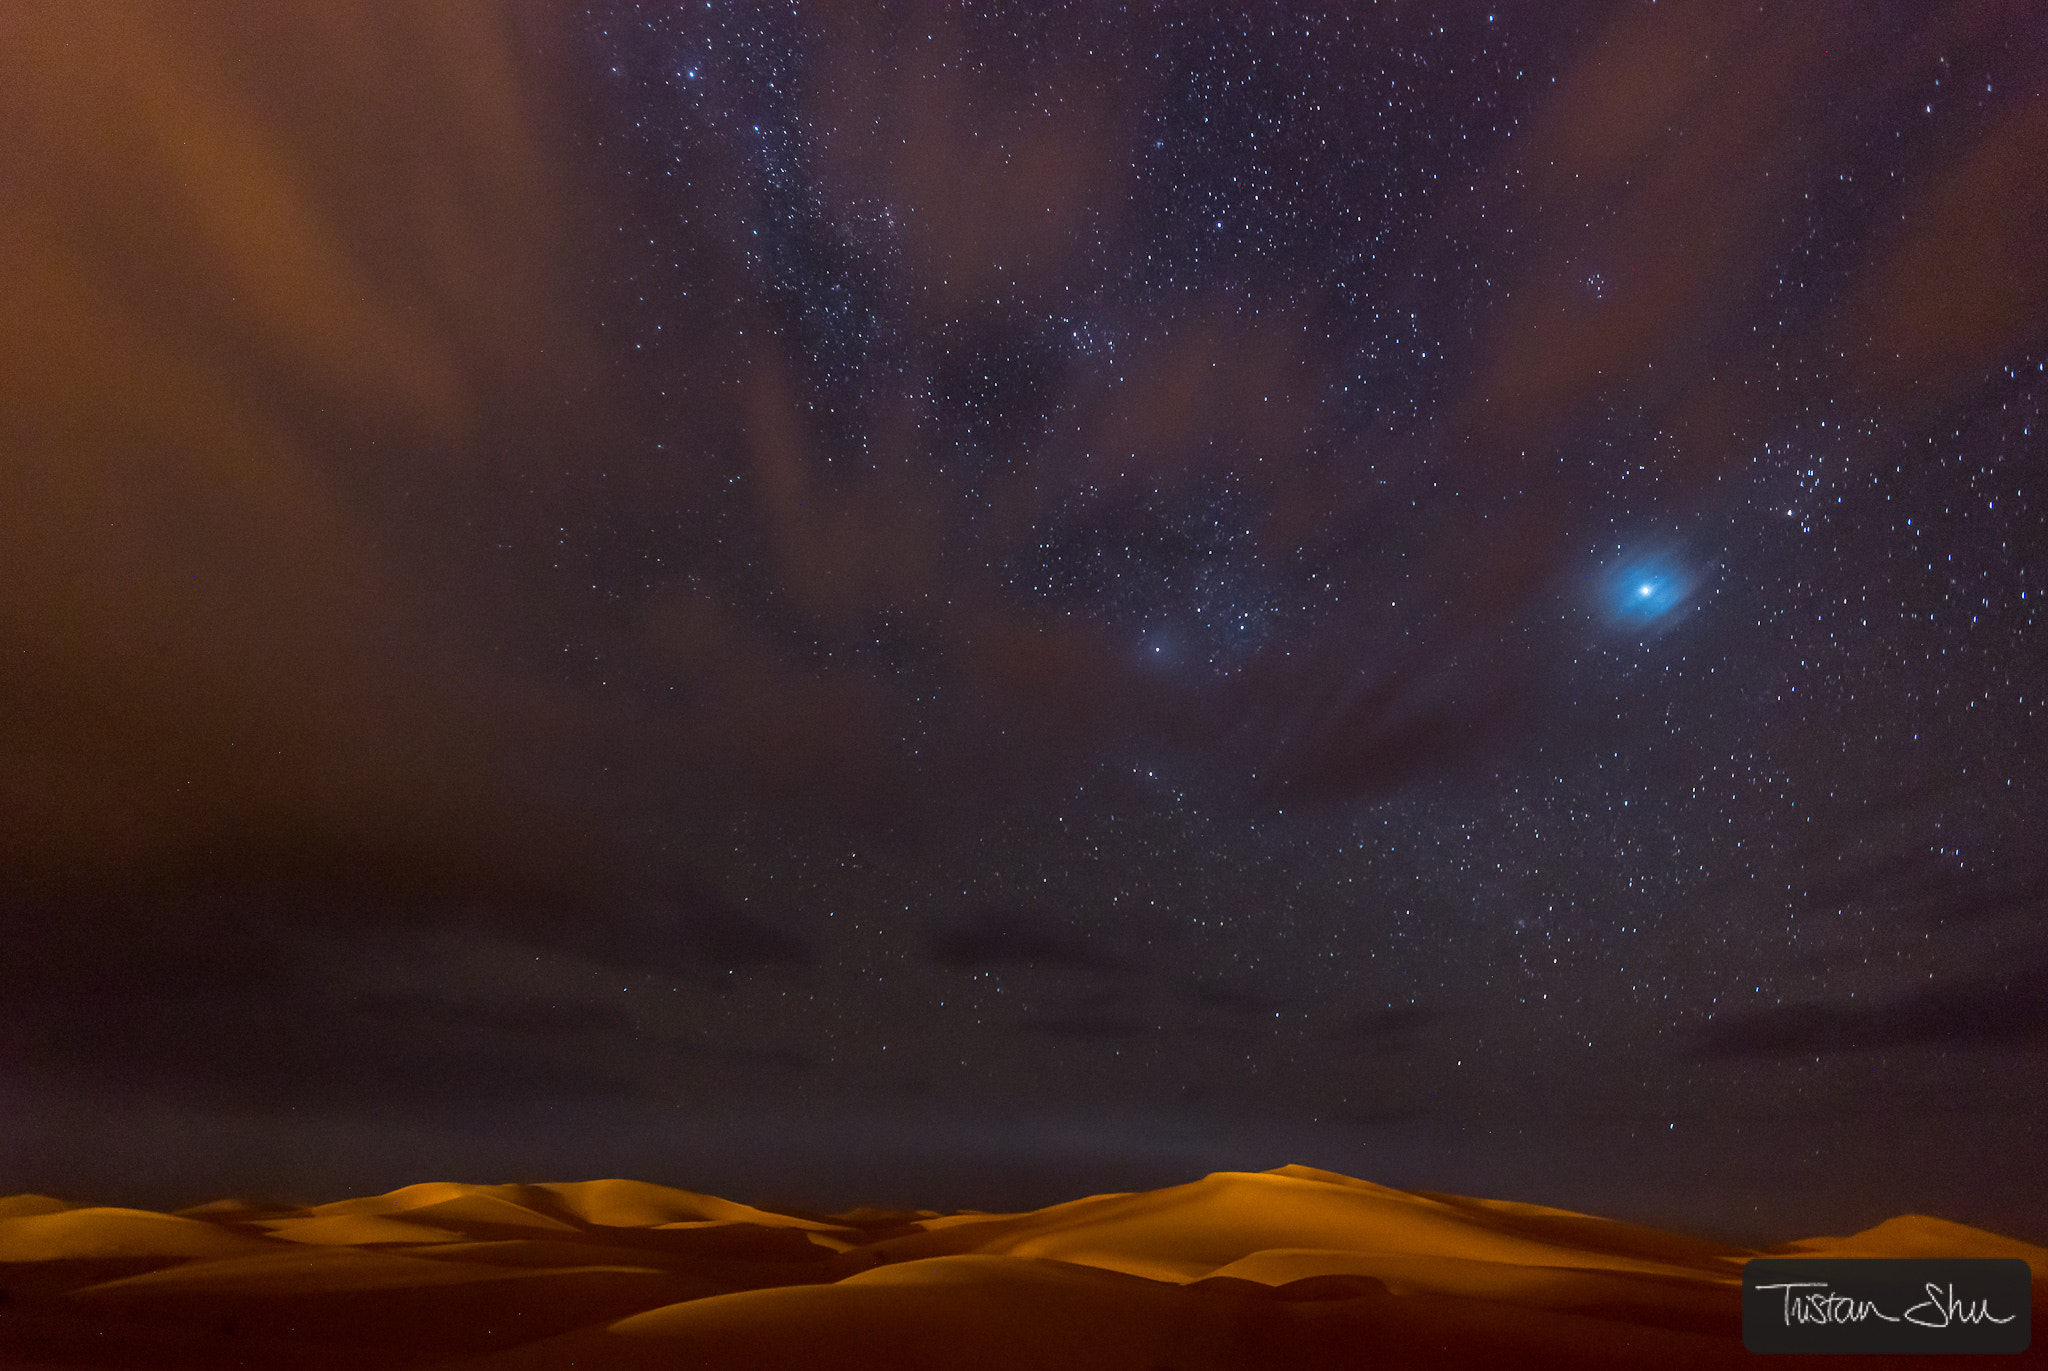 Photograph Stars, Dunes and Clouds in Marzuga Desert by Tristan Shu on 500px